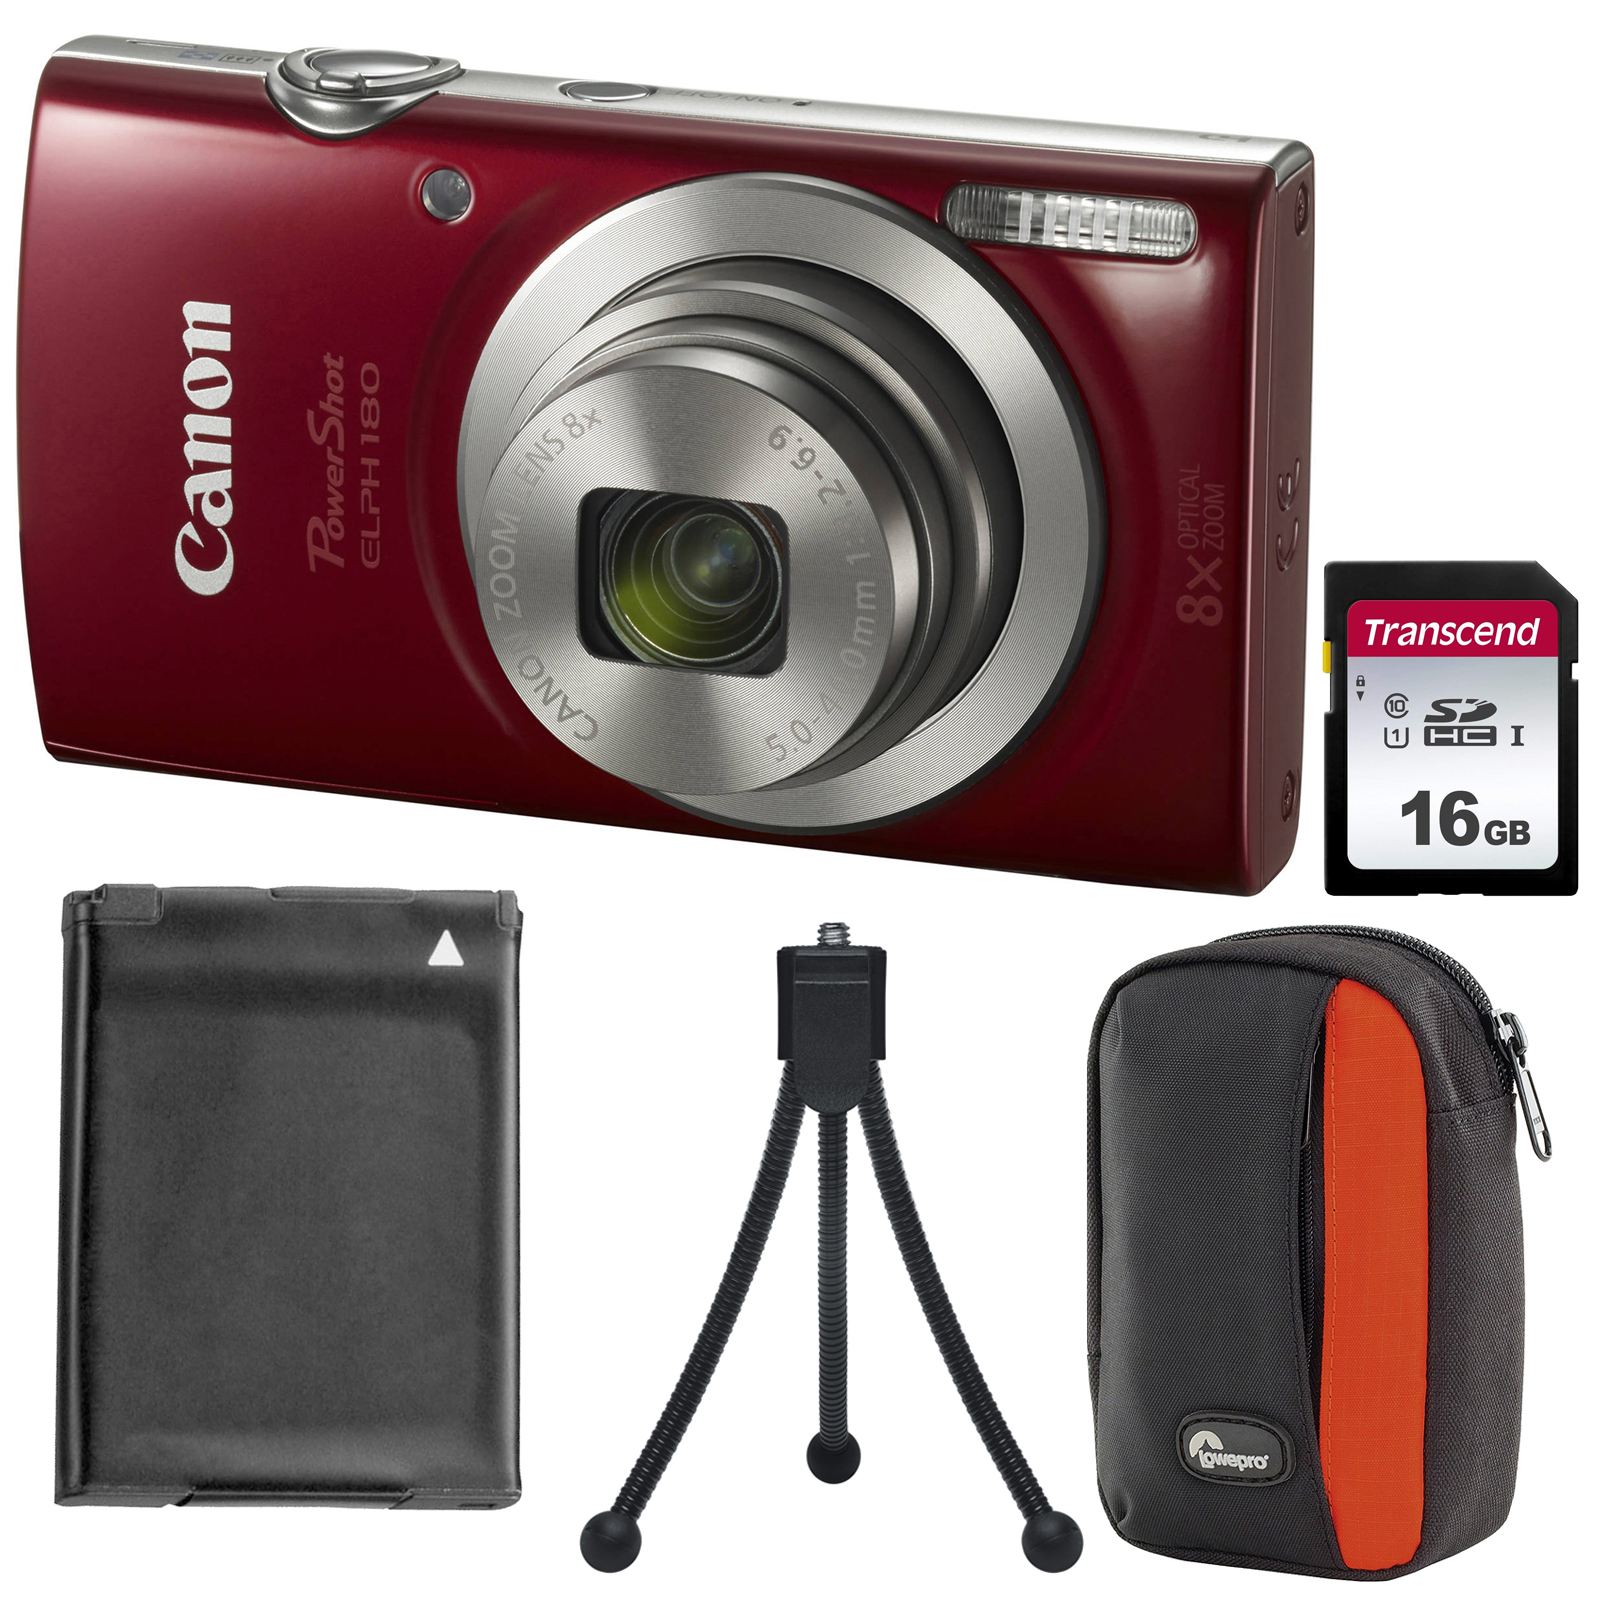 Canon PowerShot Elph 180 Digital Camera (Red) with 16GB Card + Battery + Case + Tripod + Kit